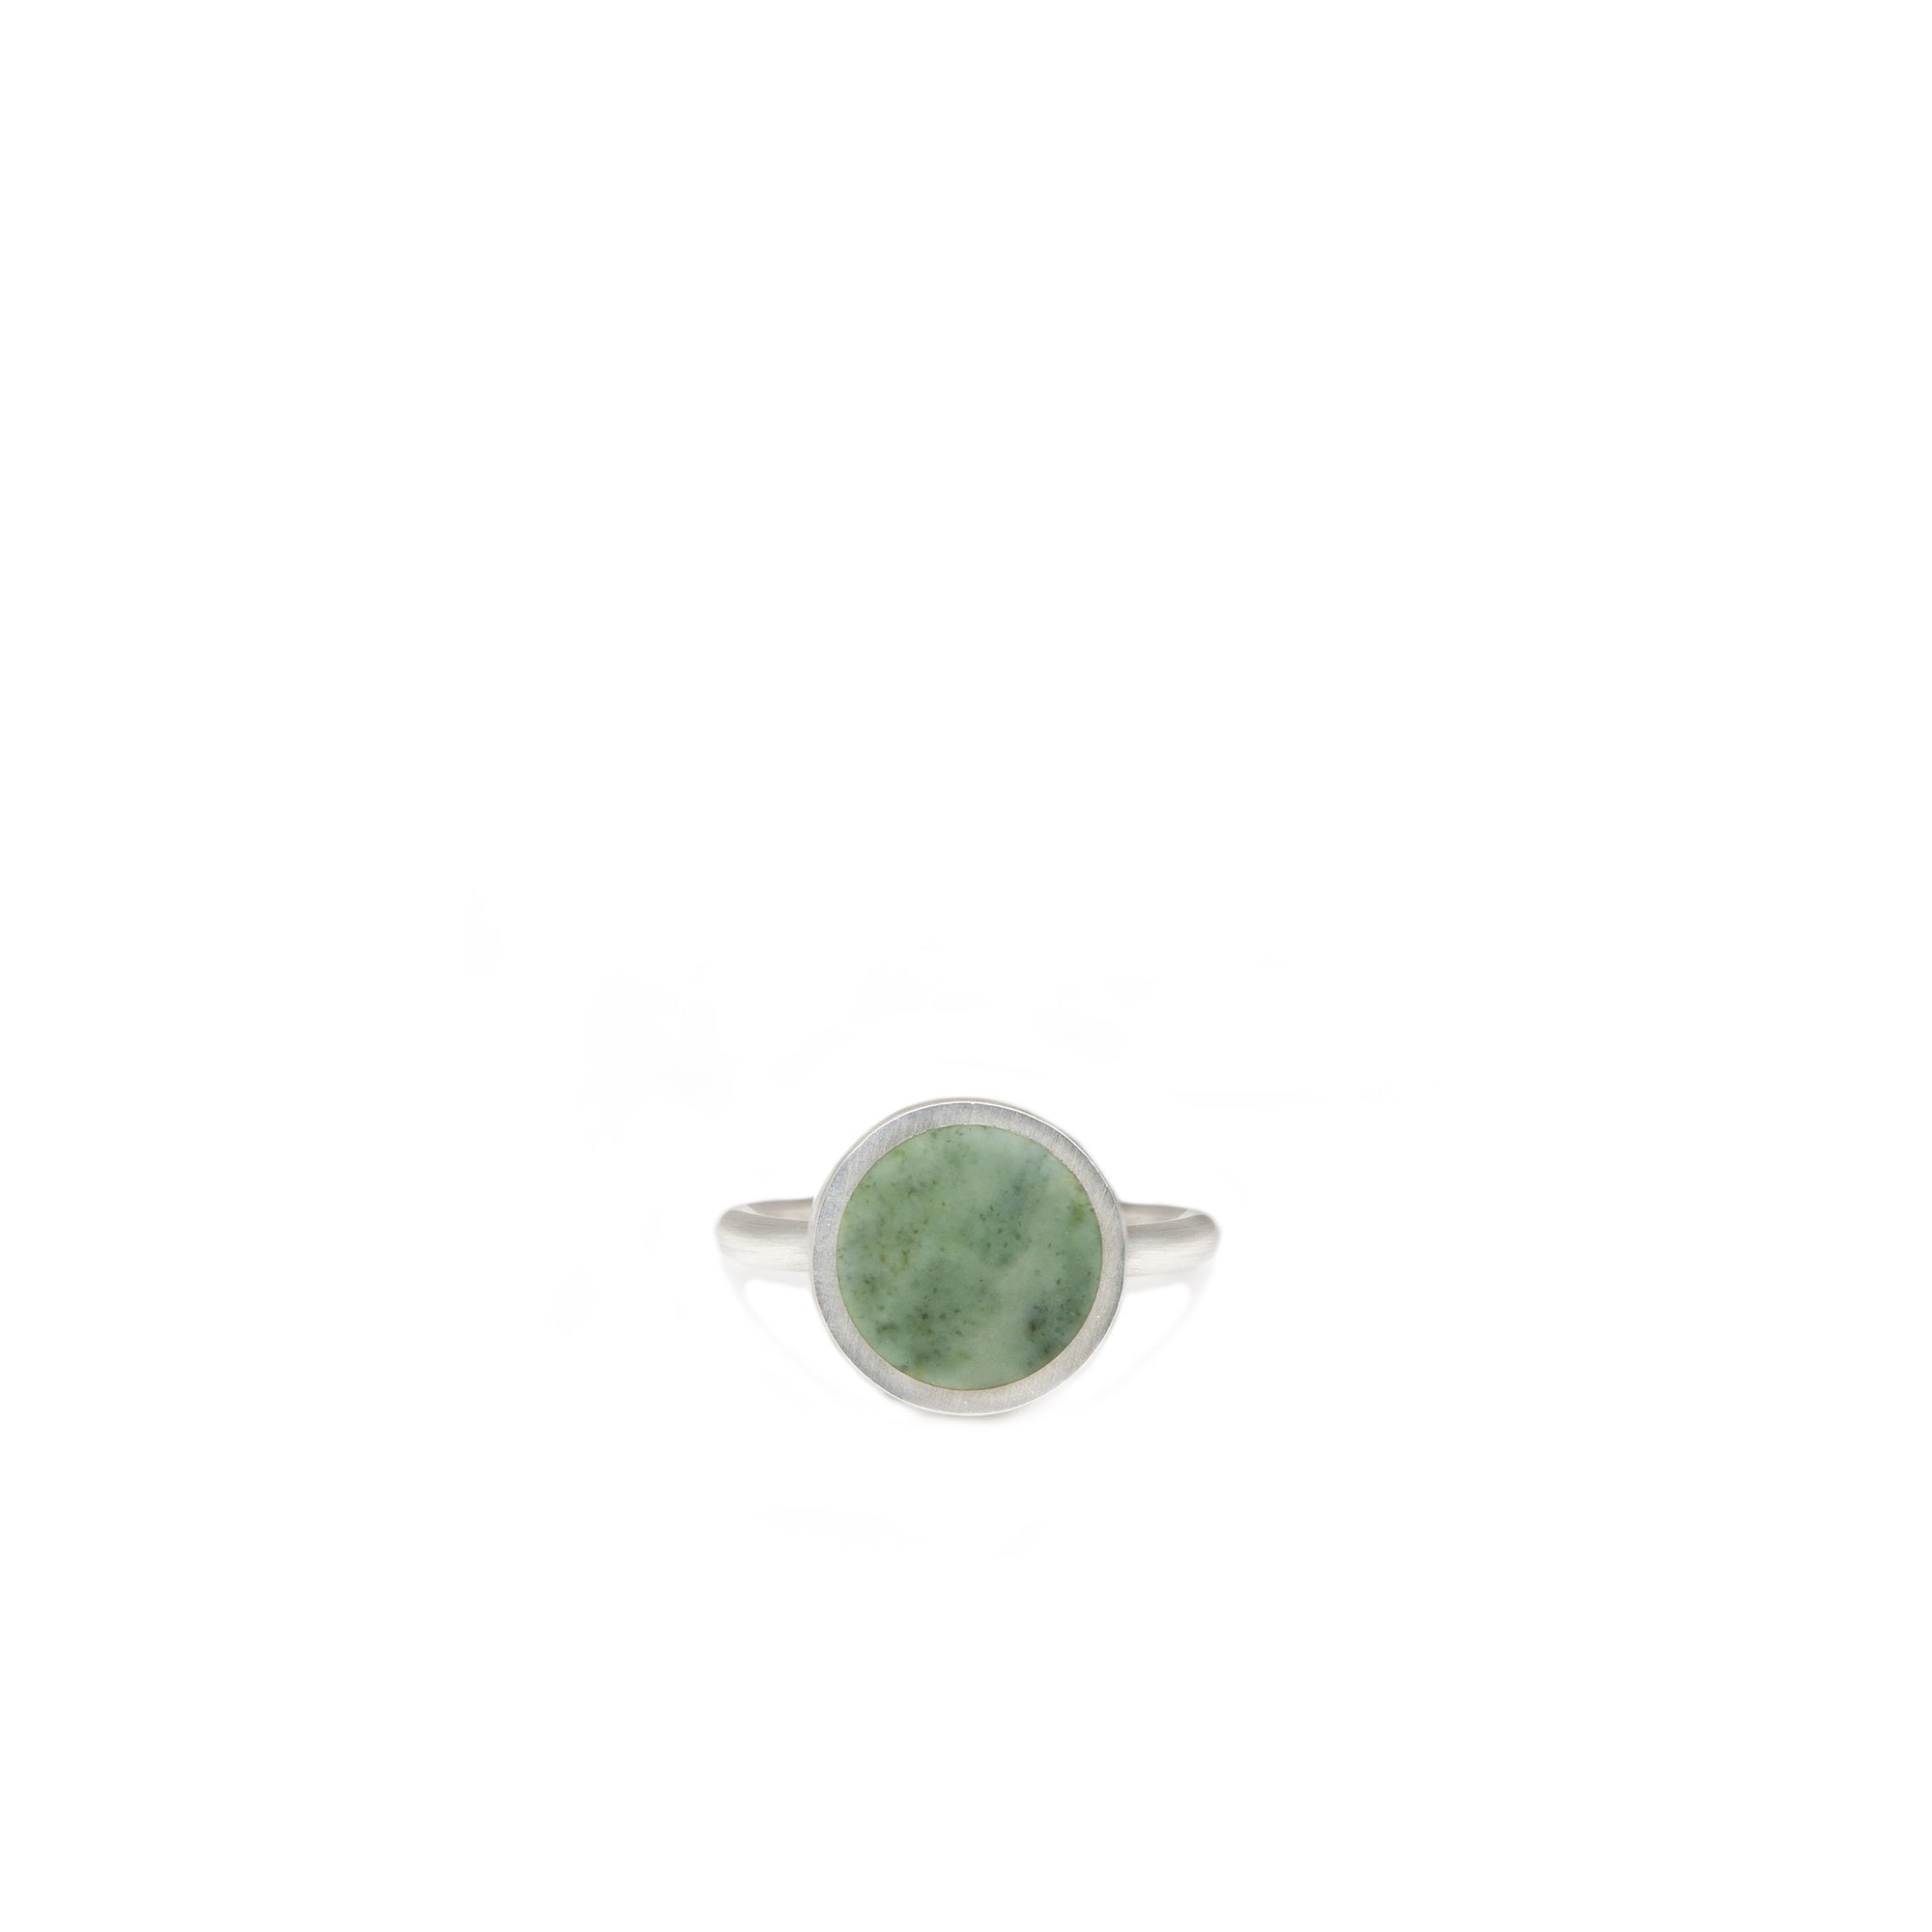 New Zealand Greenstone Sterling Silver Ring - Size M